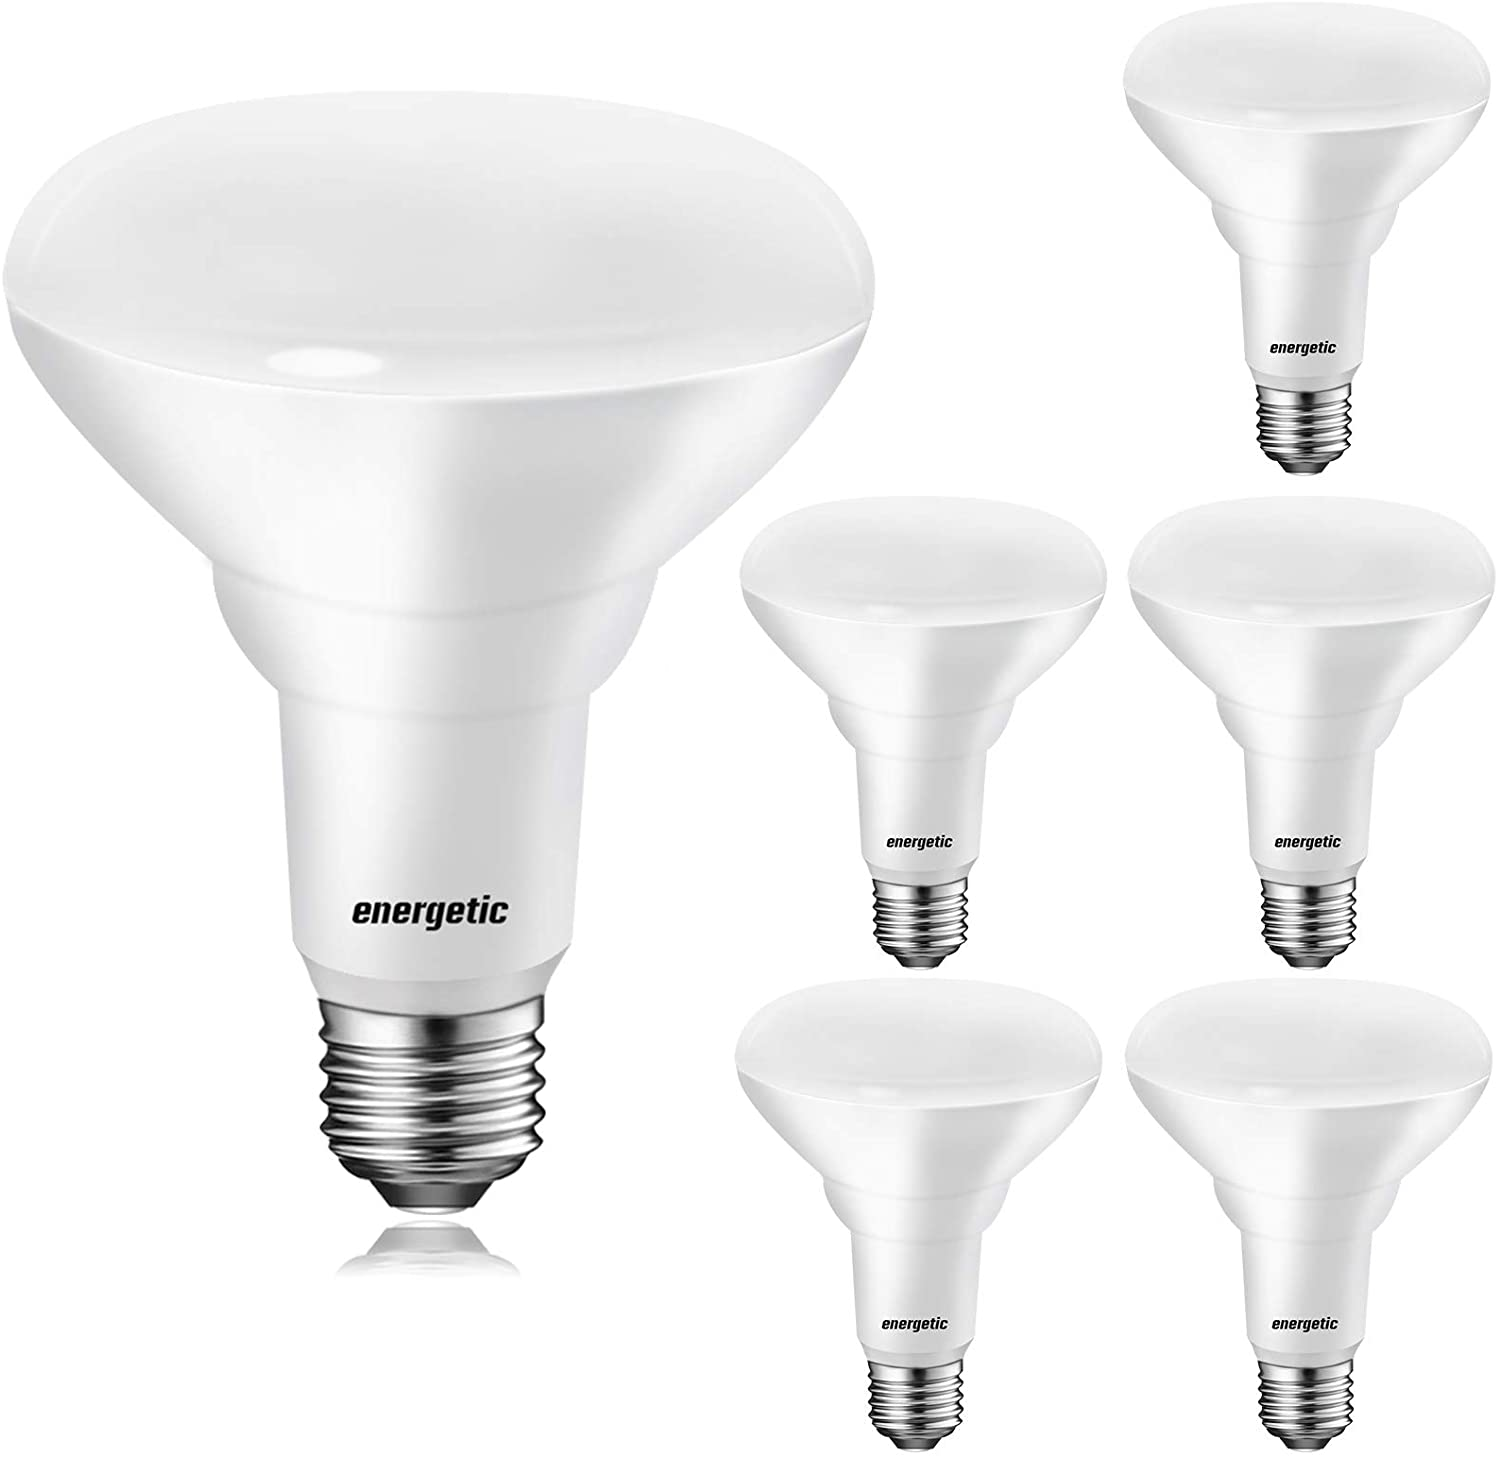 BR30 Dimmable Indoor LED Flood Light Bulb, 11W=75W, 5000K Daylight, 900LM, Ceiling Light Bulb for Cans, CRI85+, UL Listed, 6-Pack